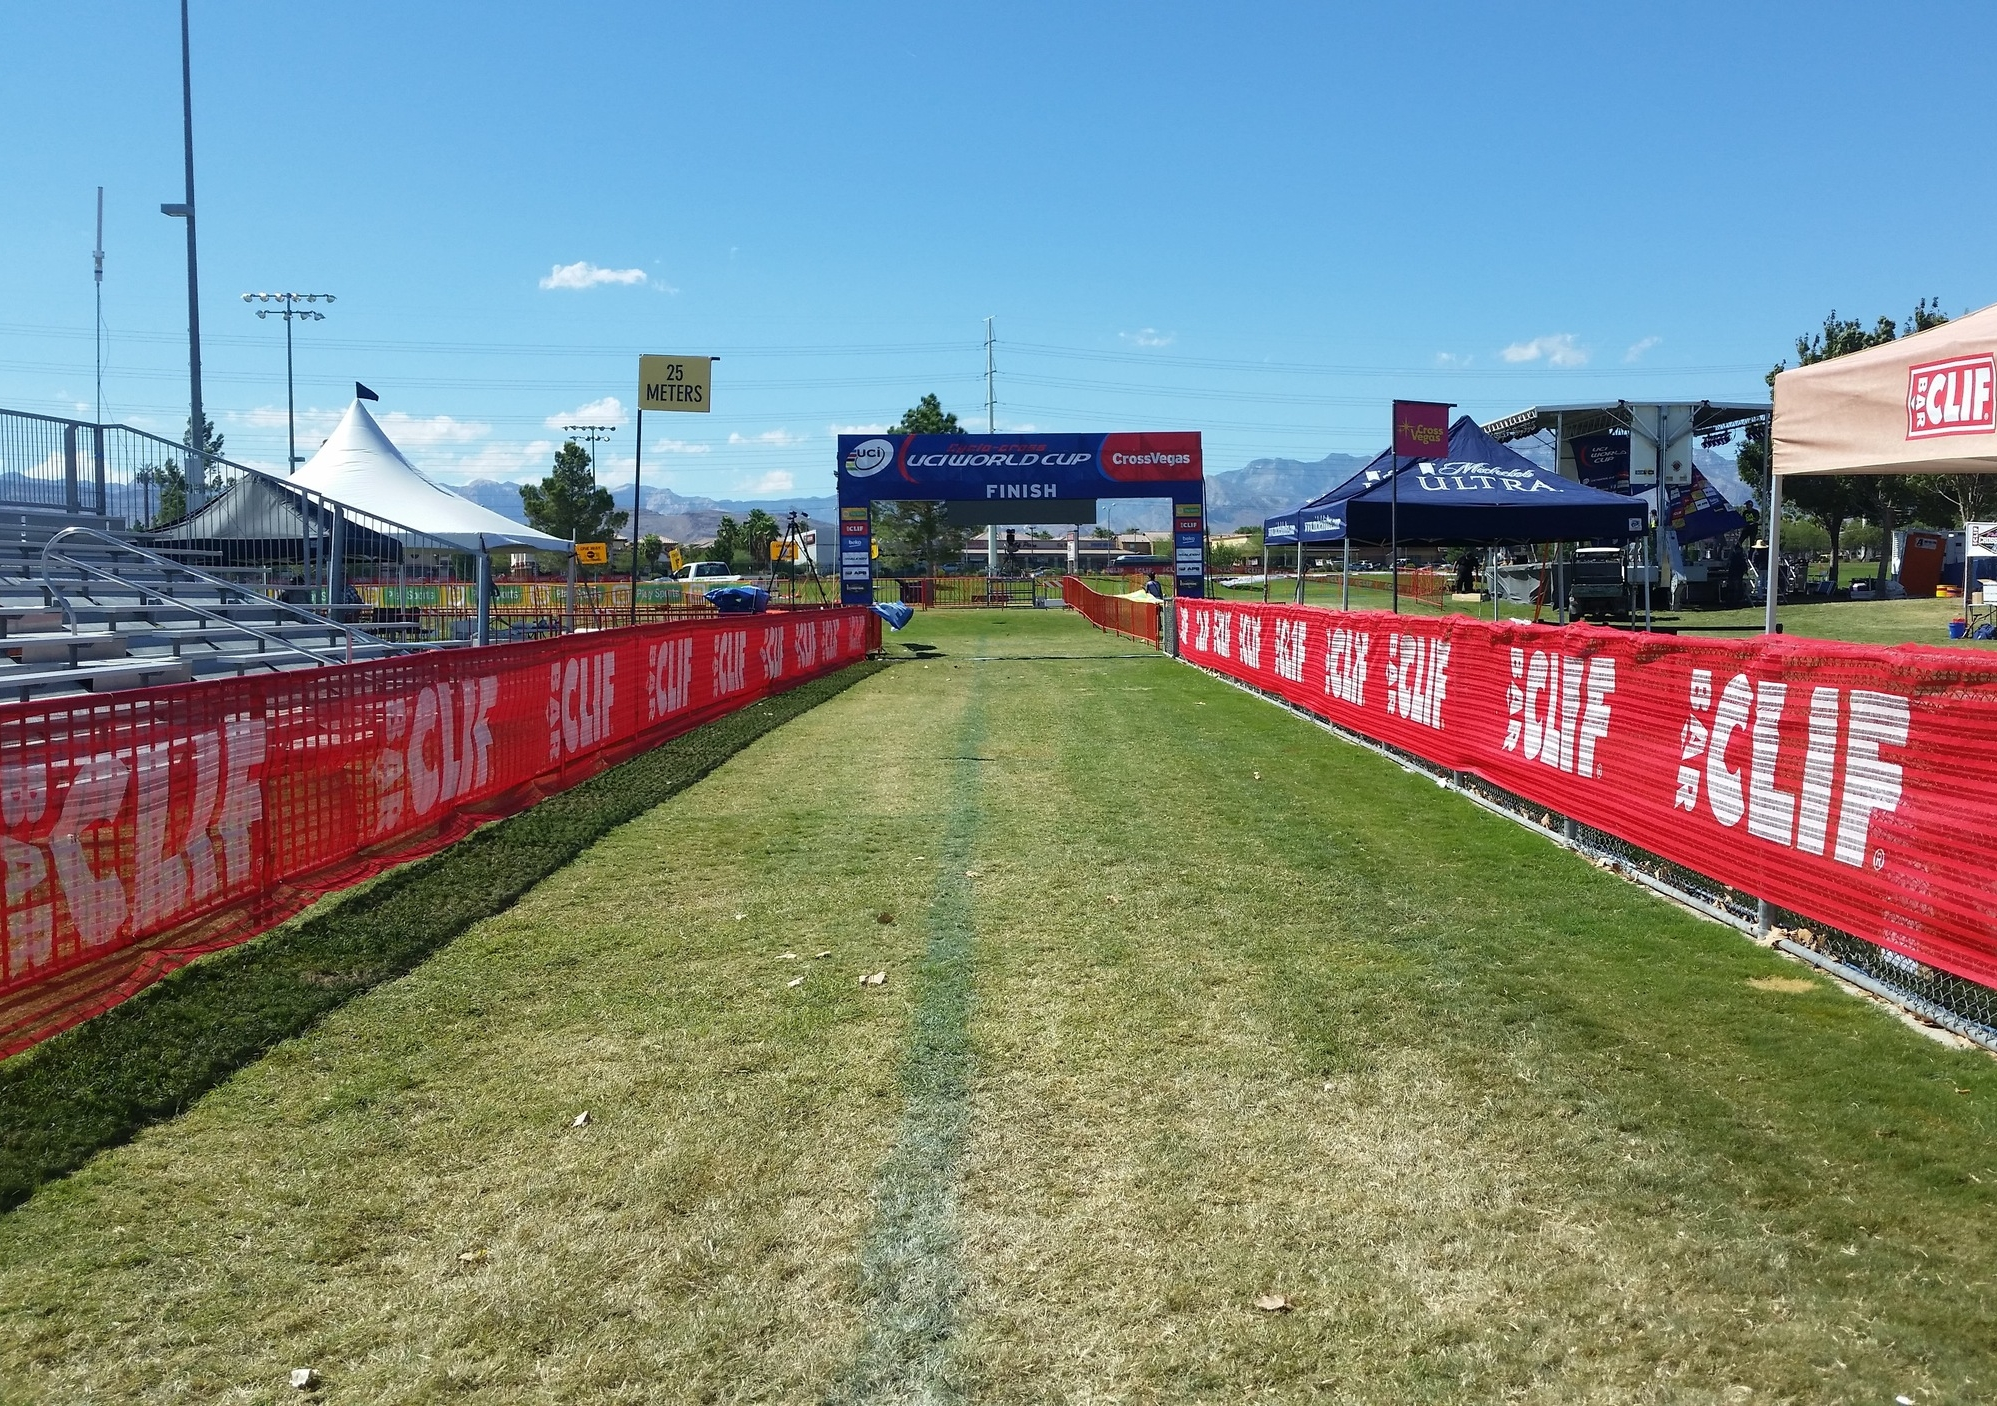 It's empty now but the crowds packed the house for Cross Vegas 2015